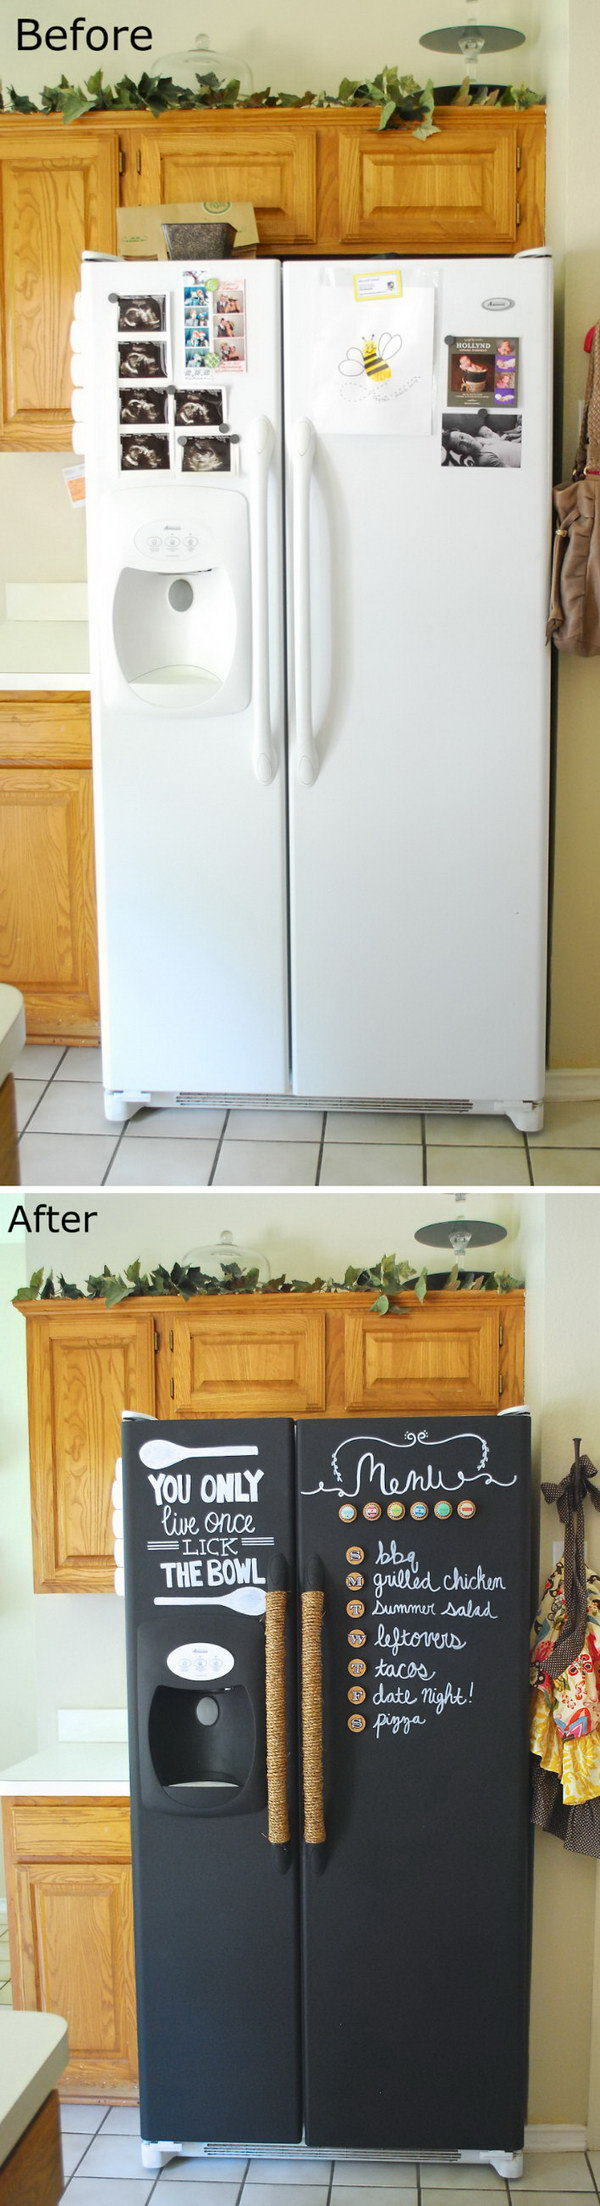 Genius kitchen makeover ideas that would save you money for Chalkboard paint kitchen ideas